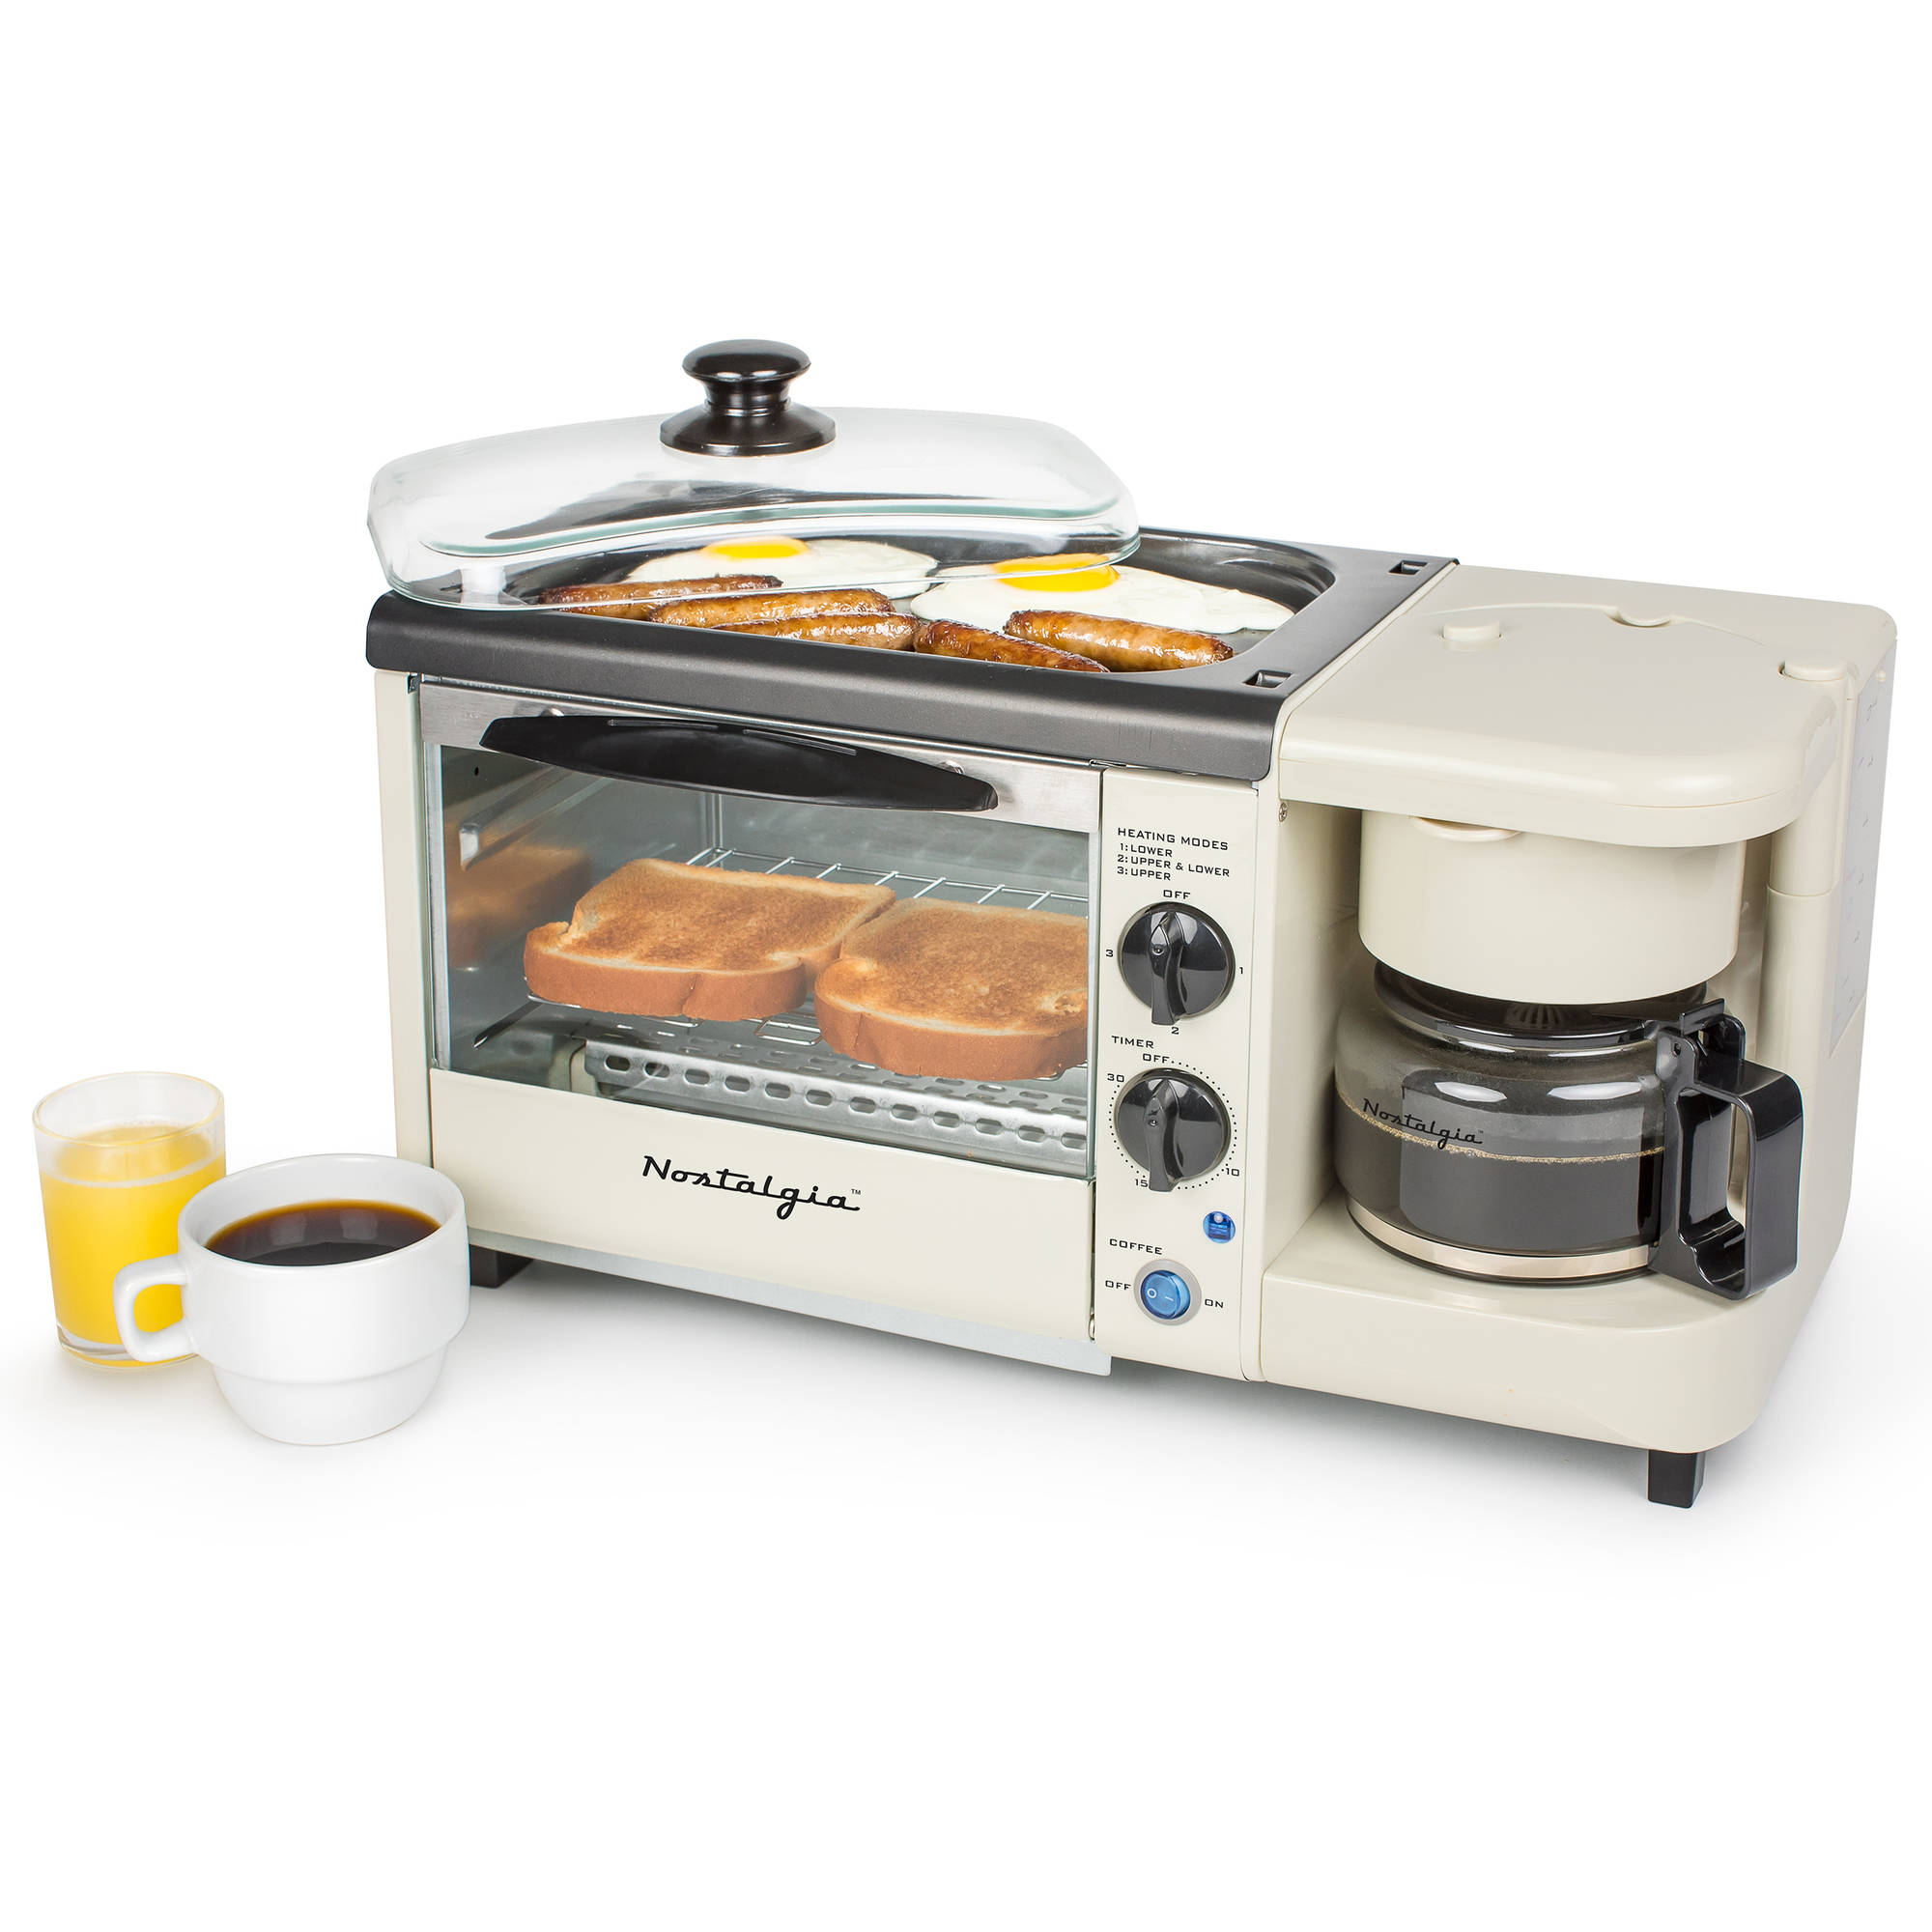 Nostalgia BSET100BC Breakfast Station Toaster, Griddle and Coffee Maker